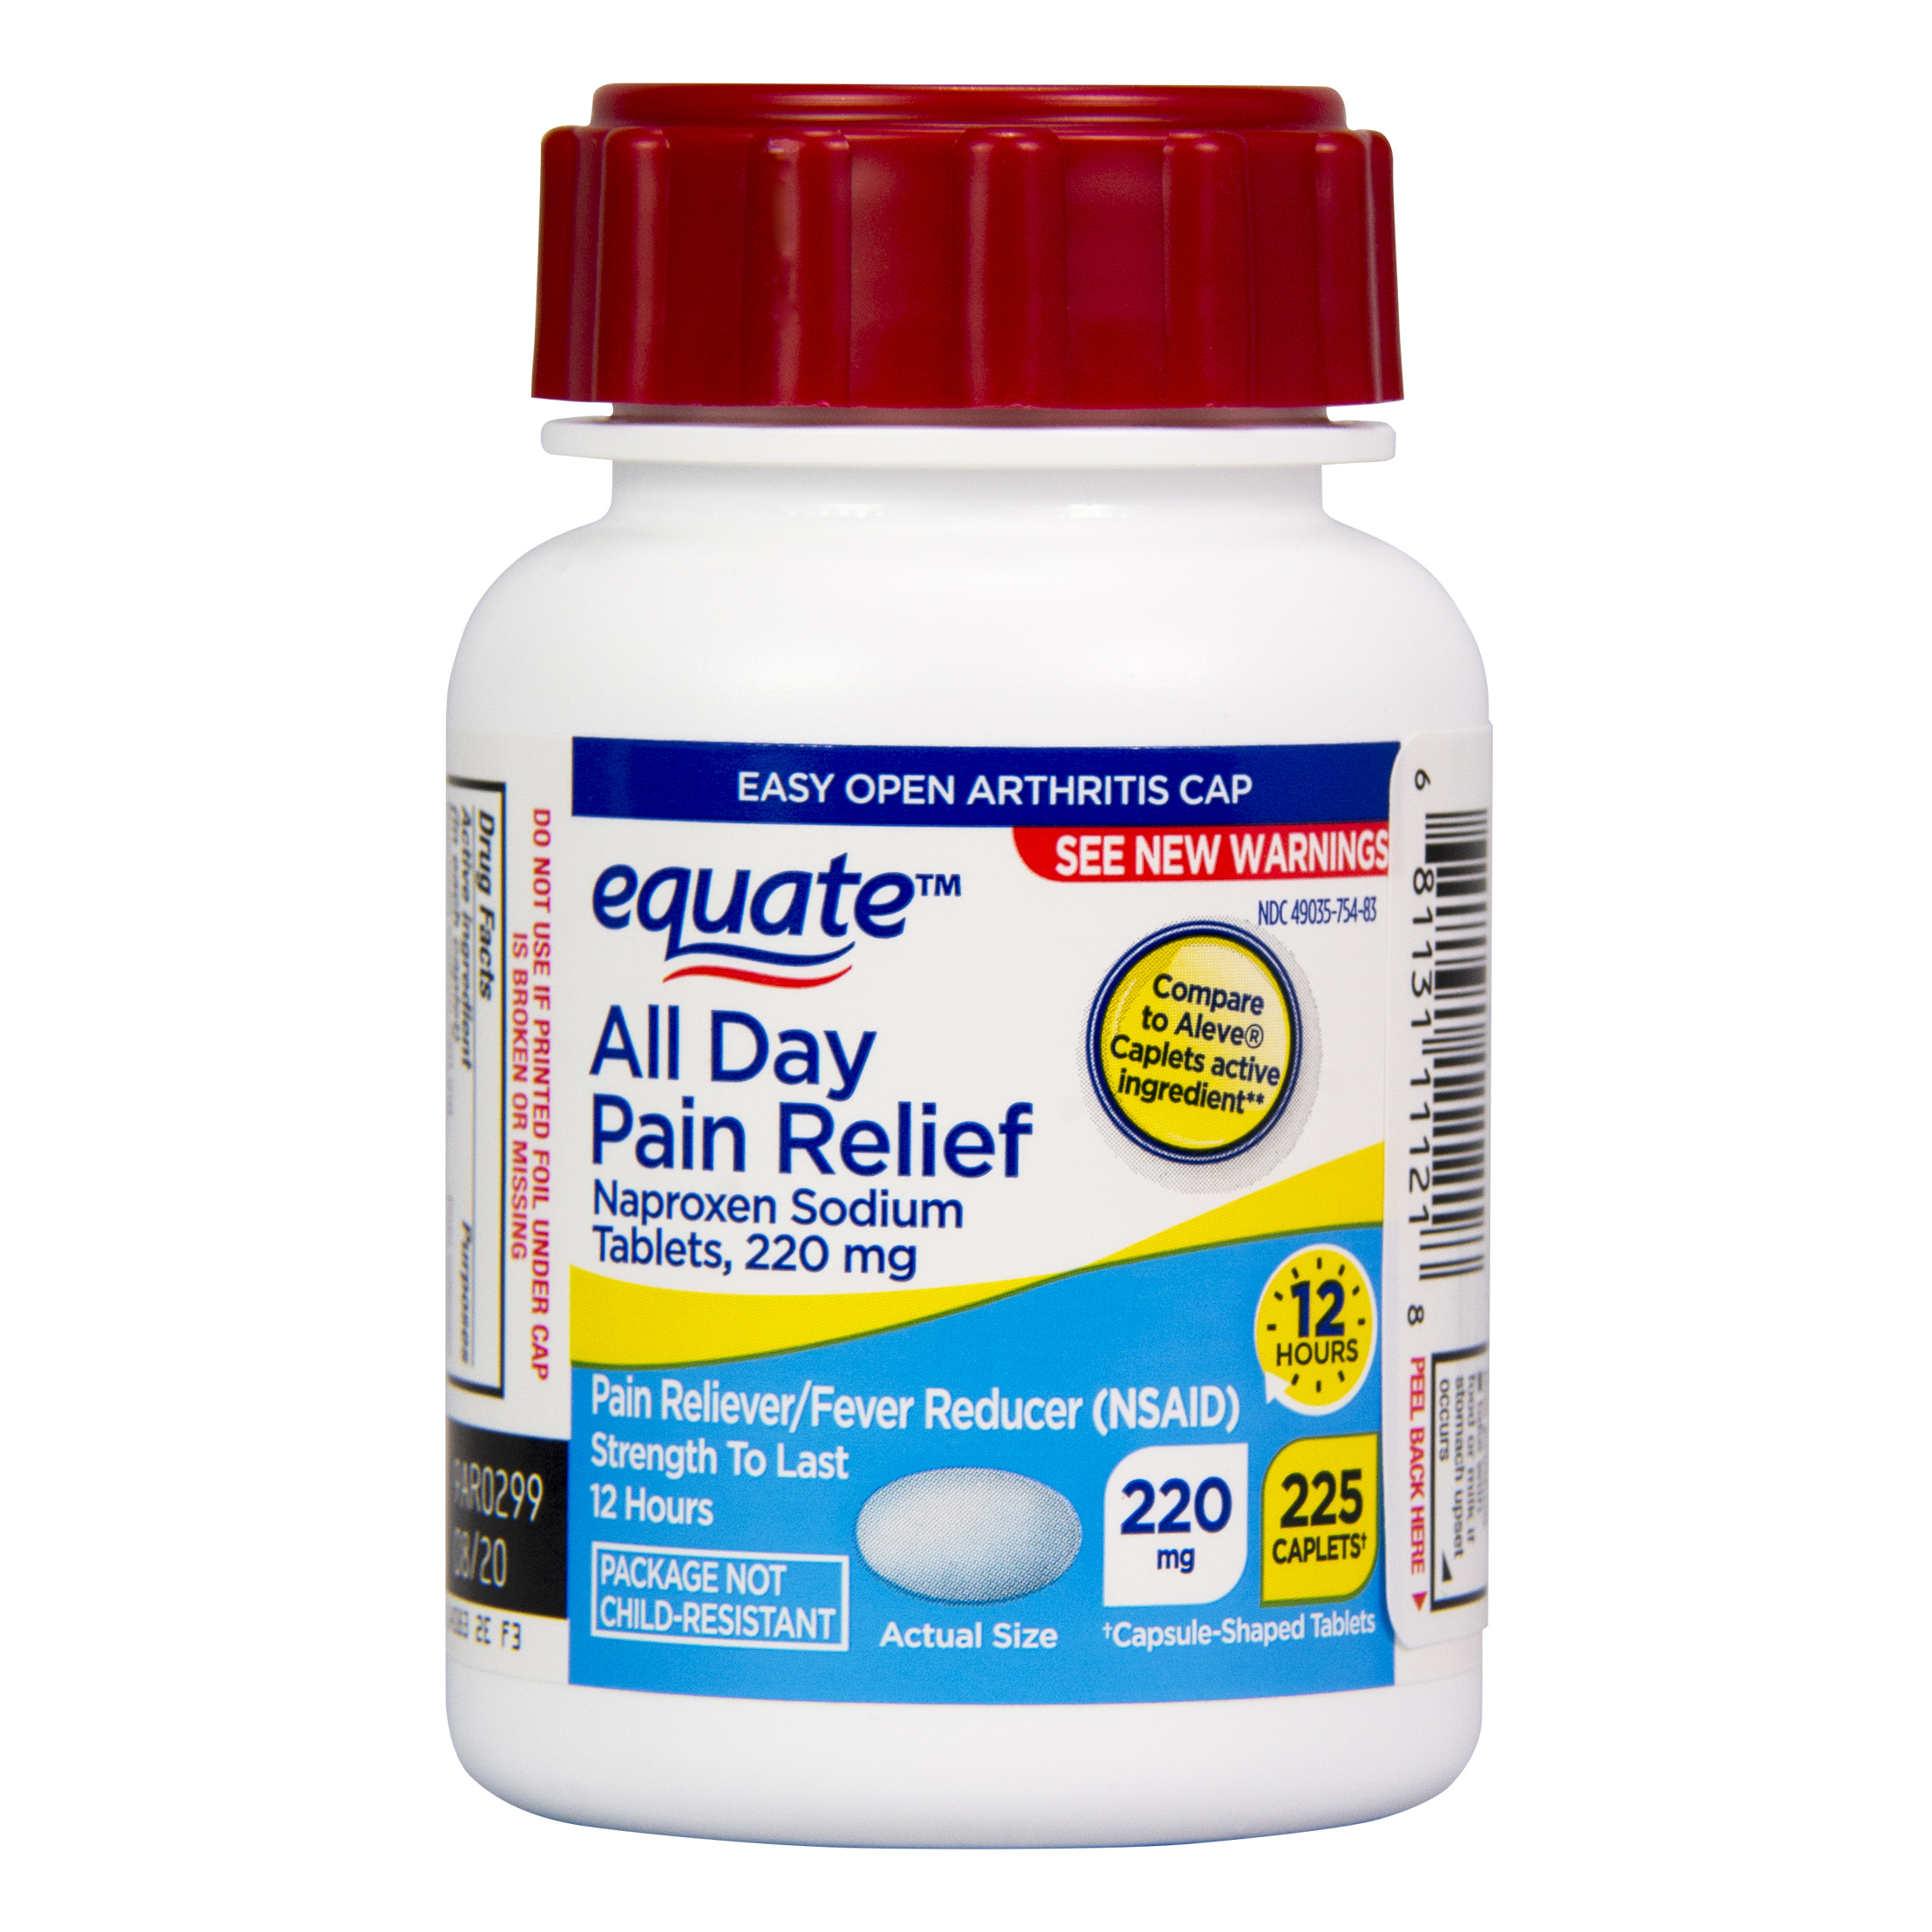 Equate All Day Pain Relief Naproxen Sodium Tablets, 220mg, 225 Ct